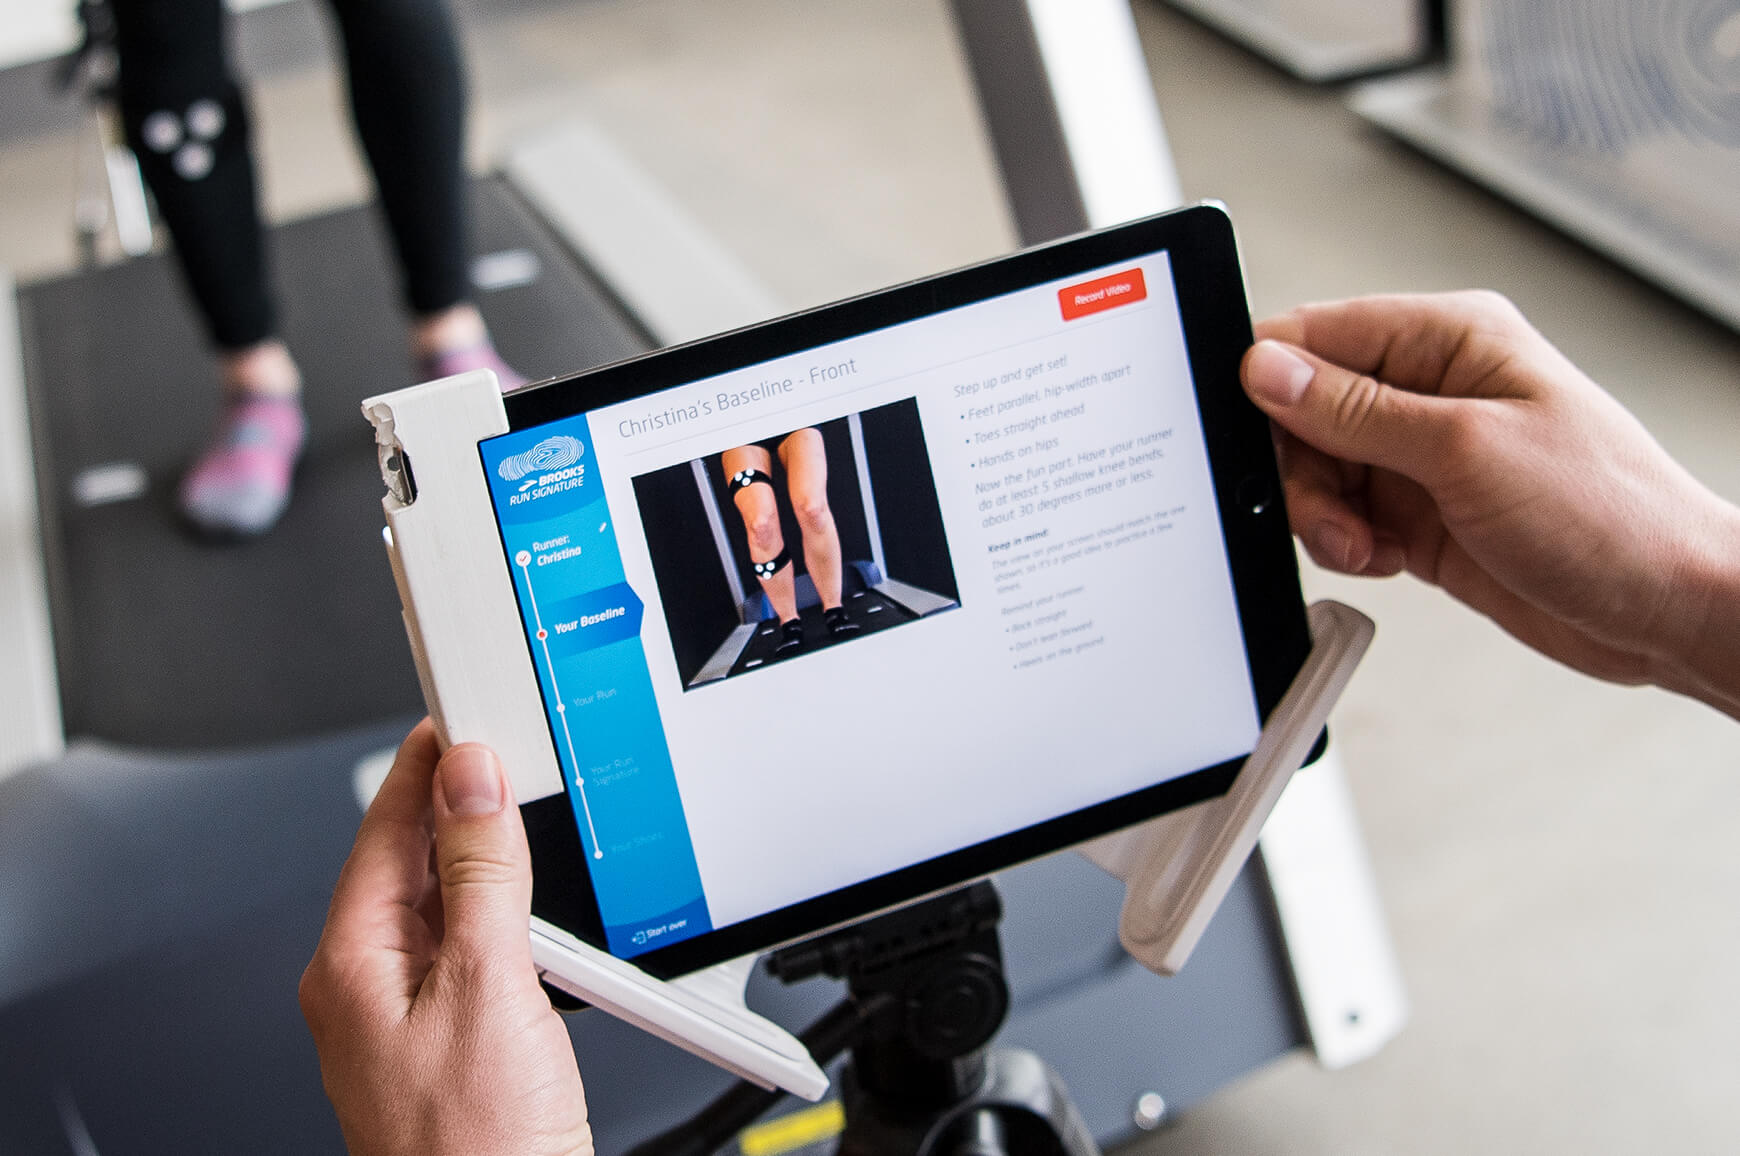 A close up of the Run Signature technology on a tablet